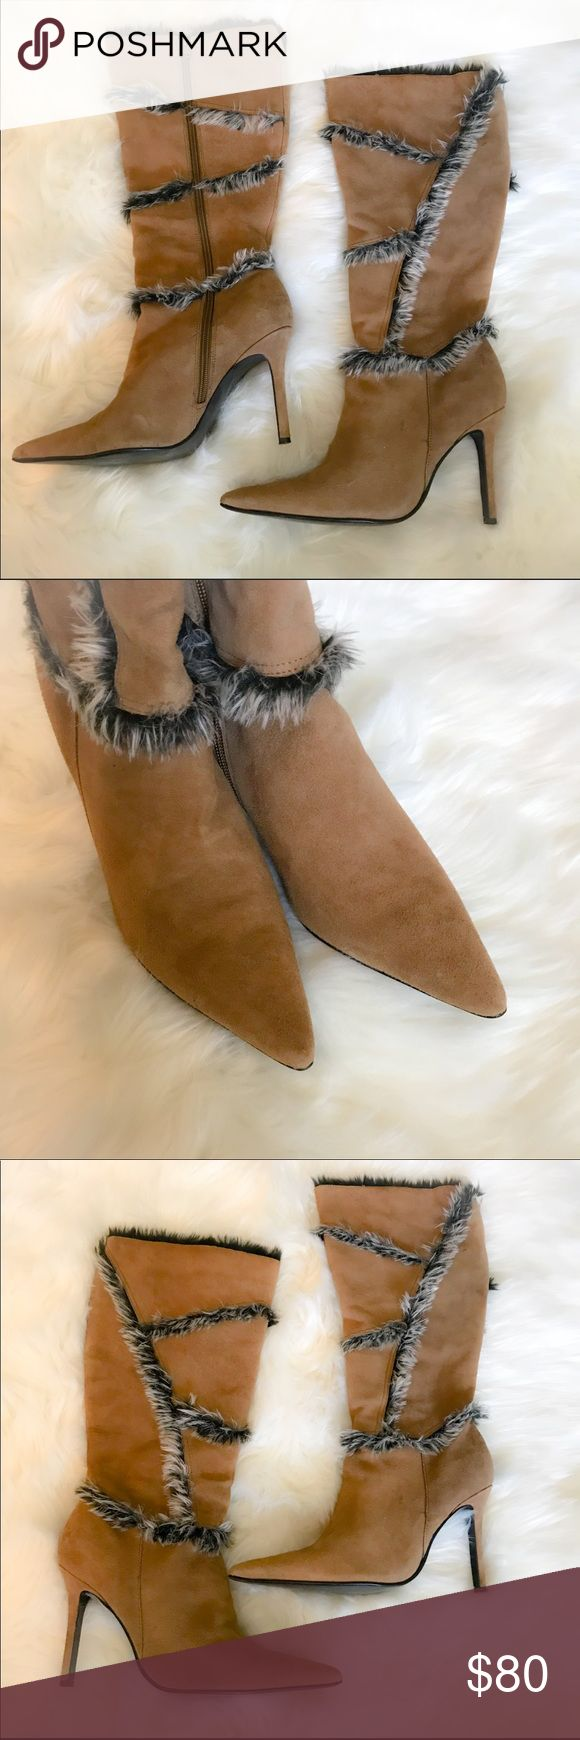 "Colin Stuart Leather Fur Lined Boots Colin Stuart Leather Faux fur lined half calve boota size 8. Great condition. Some light specks here and there but nothing really noticeable. Pointed toe and camel color. Heel is approx 4"" Shoes Heeled Boots"